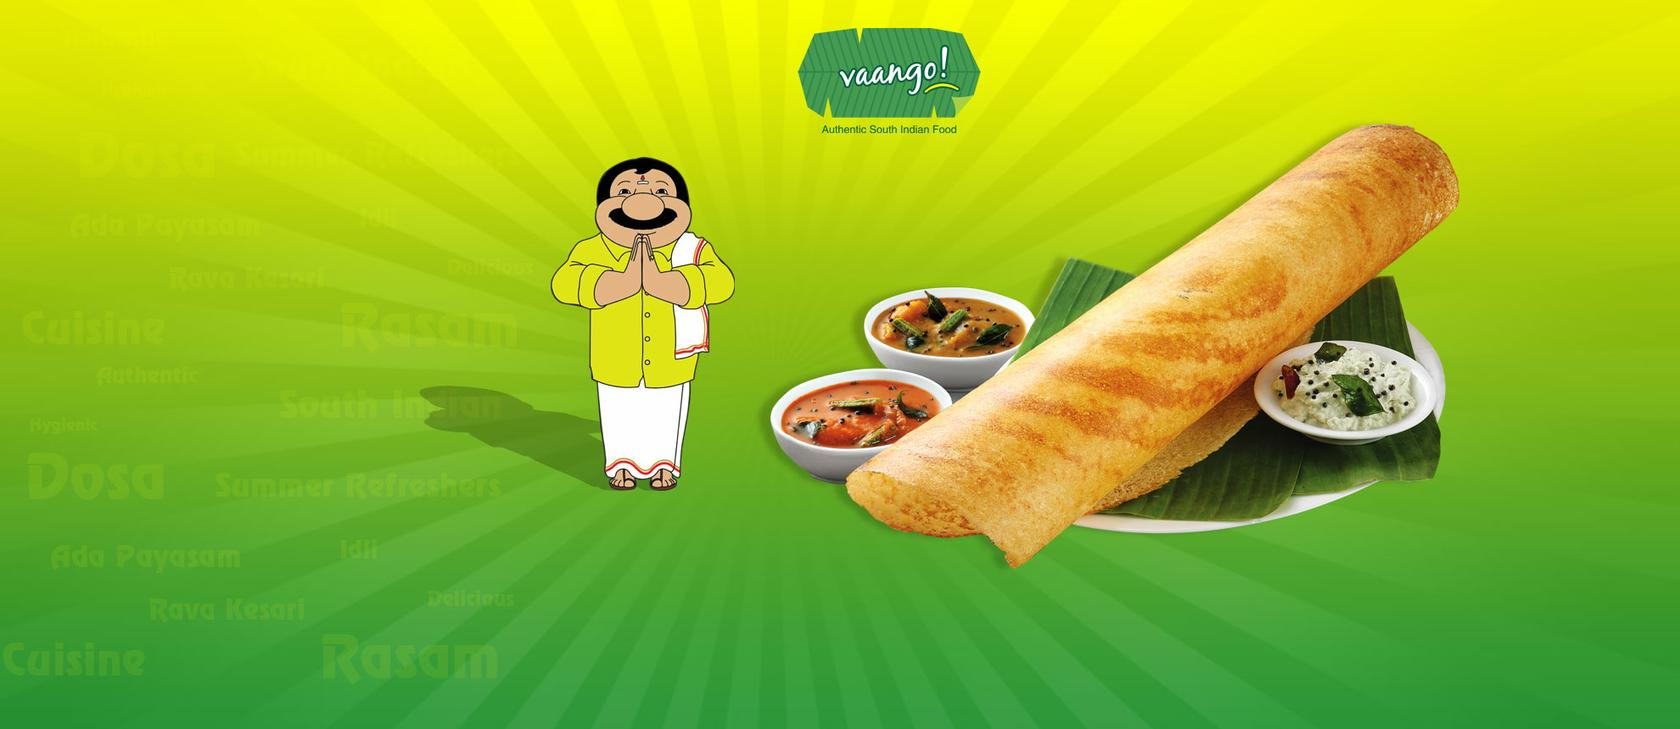 Authentic South Indian Restaurant